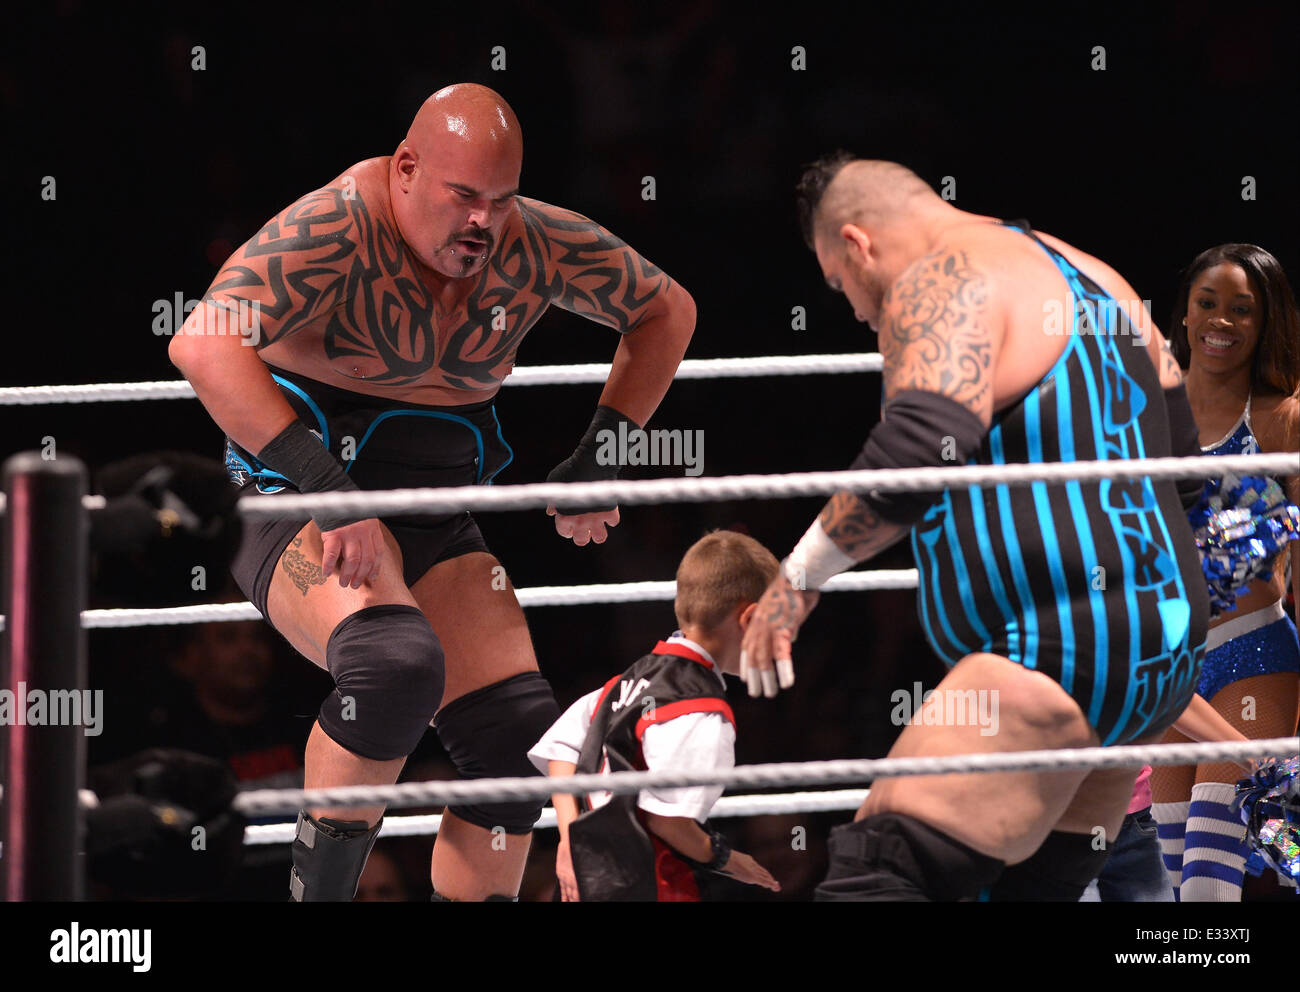 wwe live at bb t center in action during wwe live featuring stock